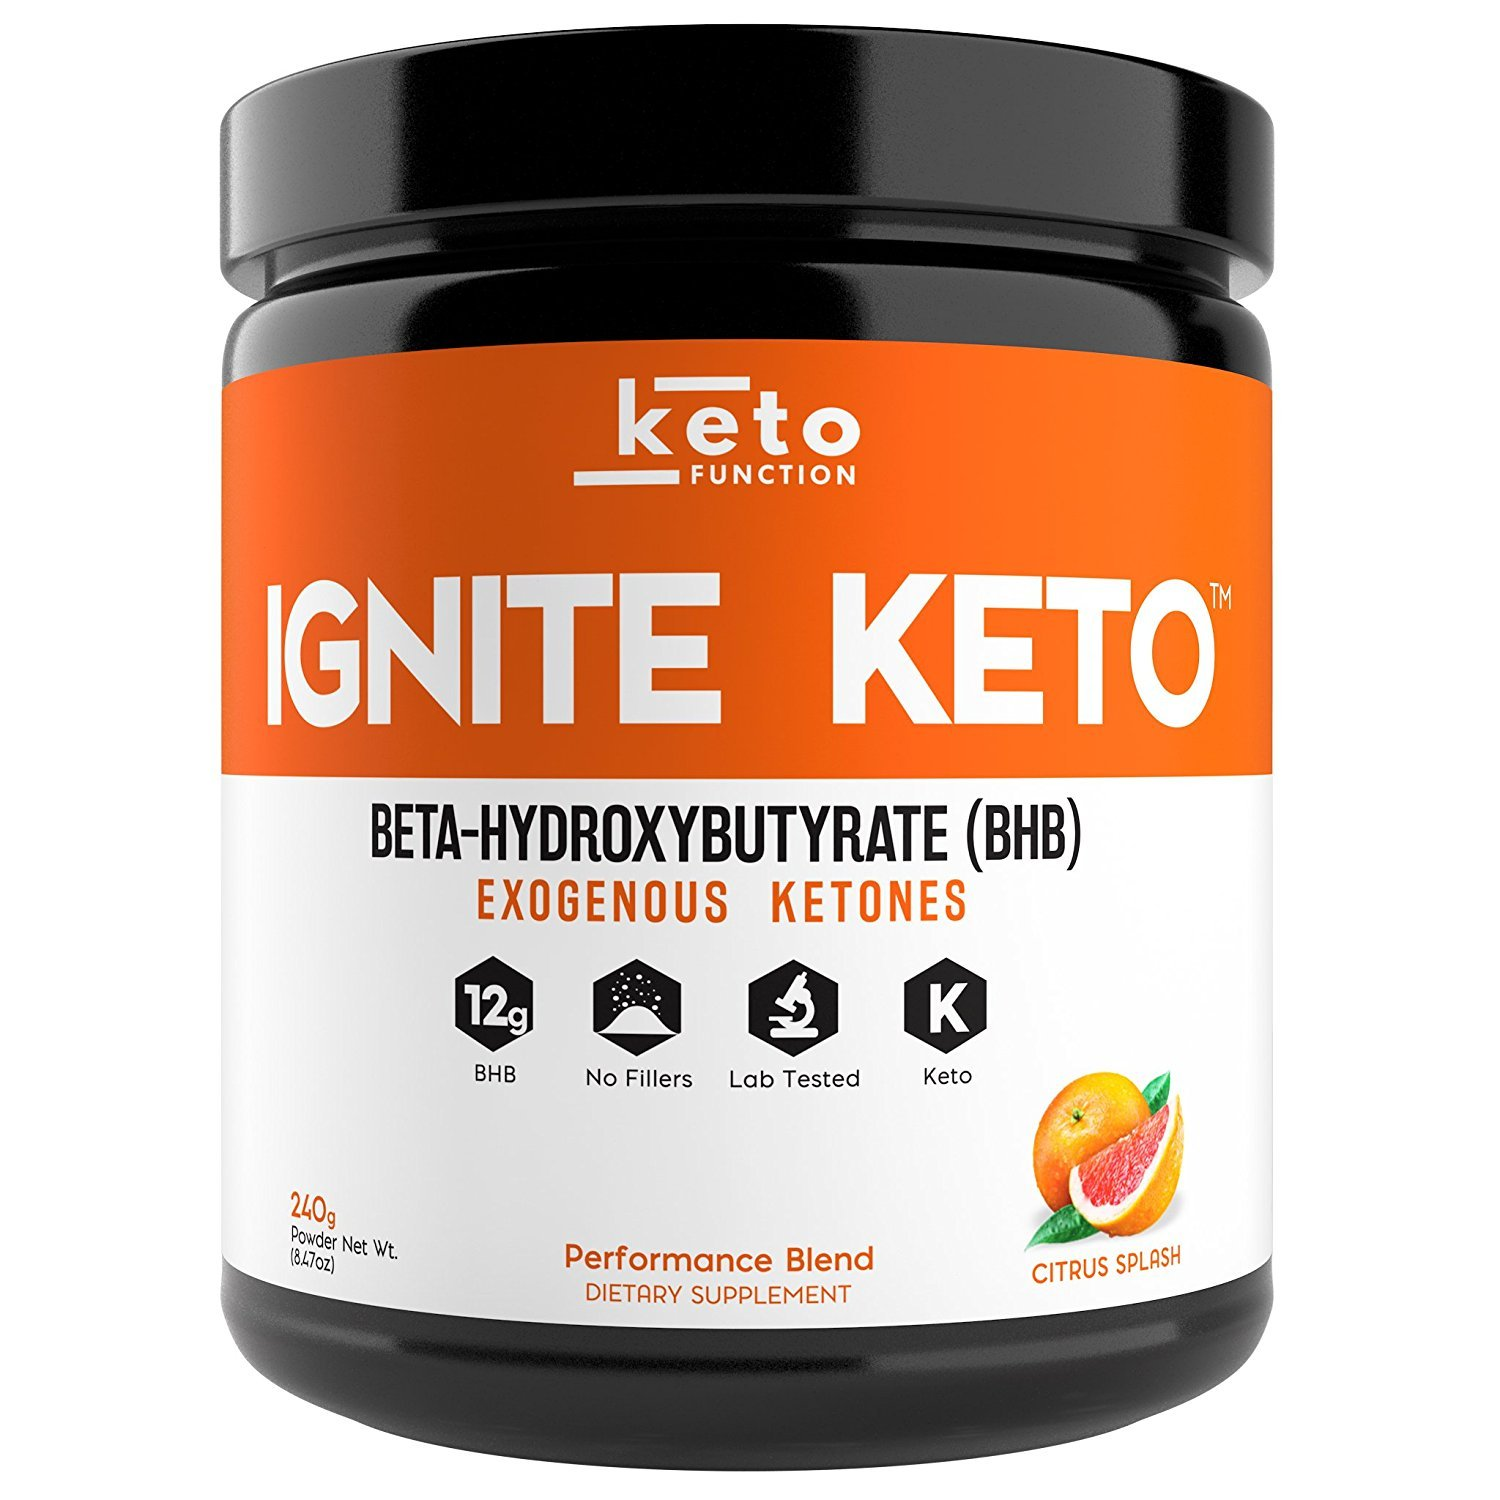 IGNITE KETO Drink - Instant Exogenous Ketones Supplement - 12g Pure BHB Salts - Fuel Ketosis, Energy, and Focus - Best goBHB Ketone Drink Powder Mix - Perfect for Low Carb Keto Diet